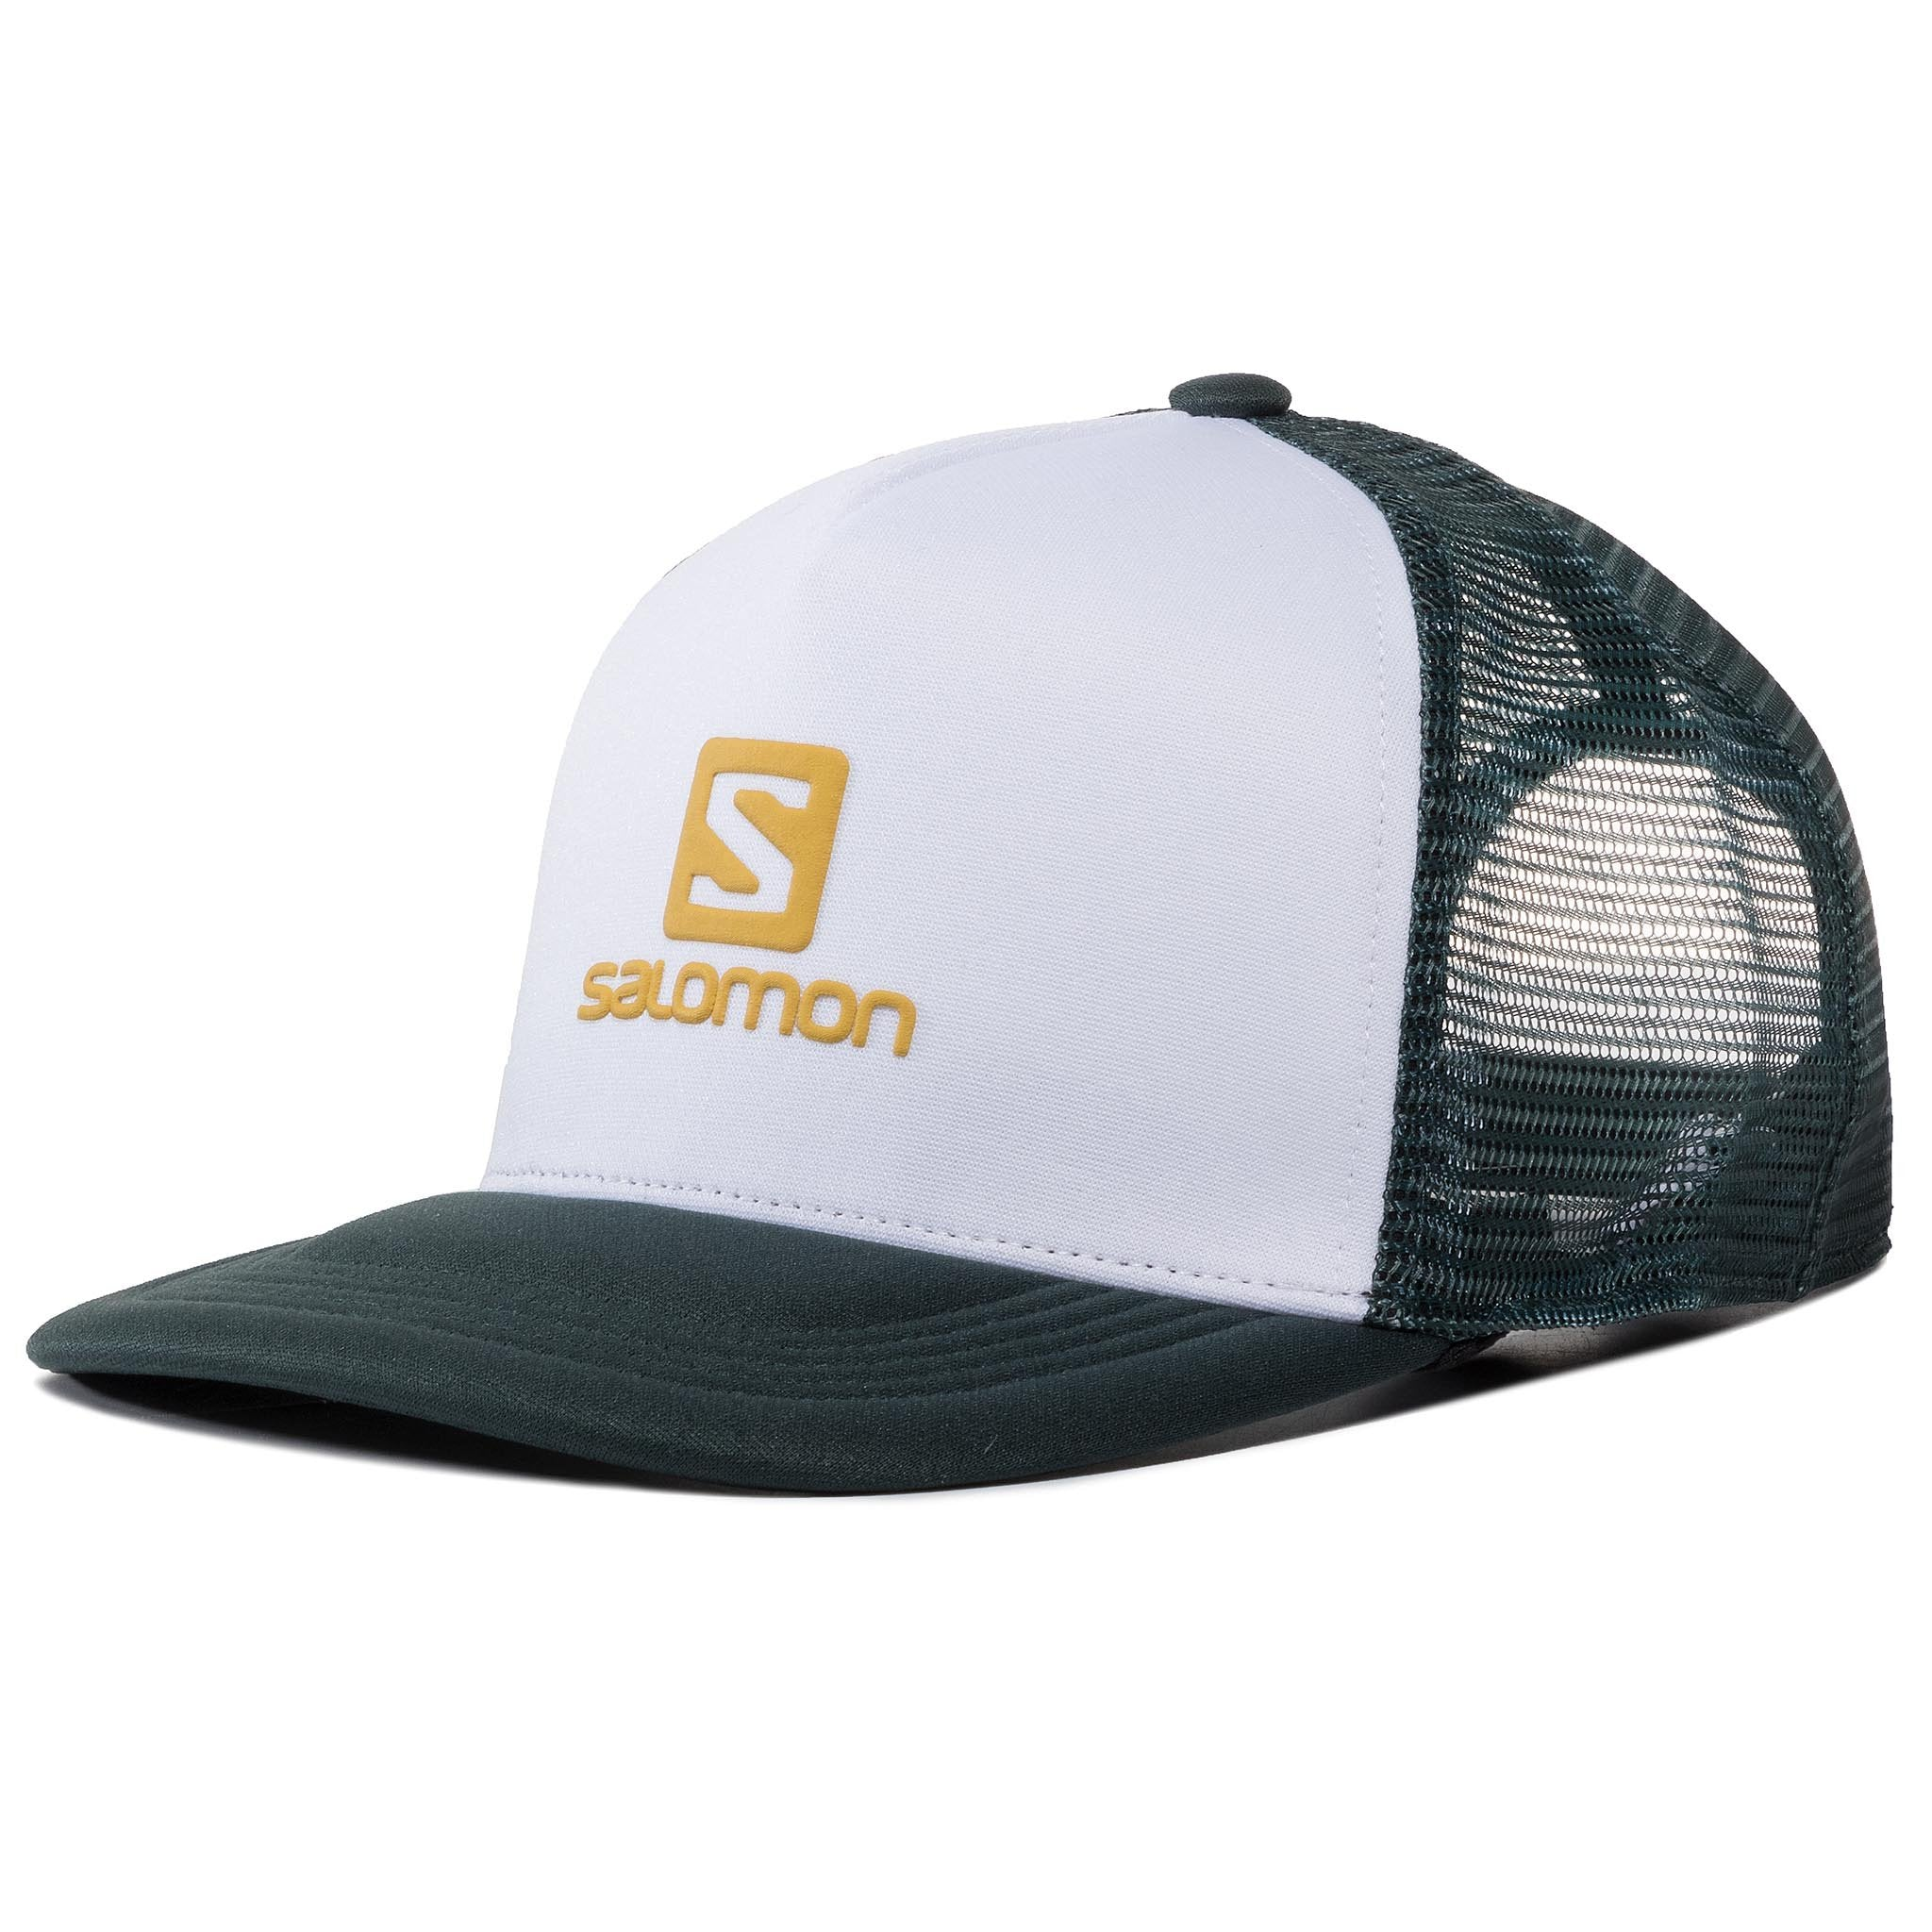 Unisex Summer Logo Cap (green/white)